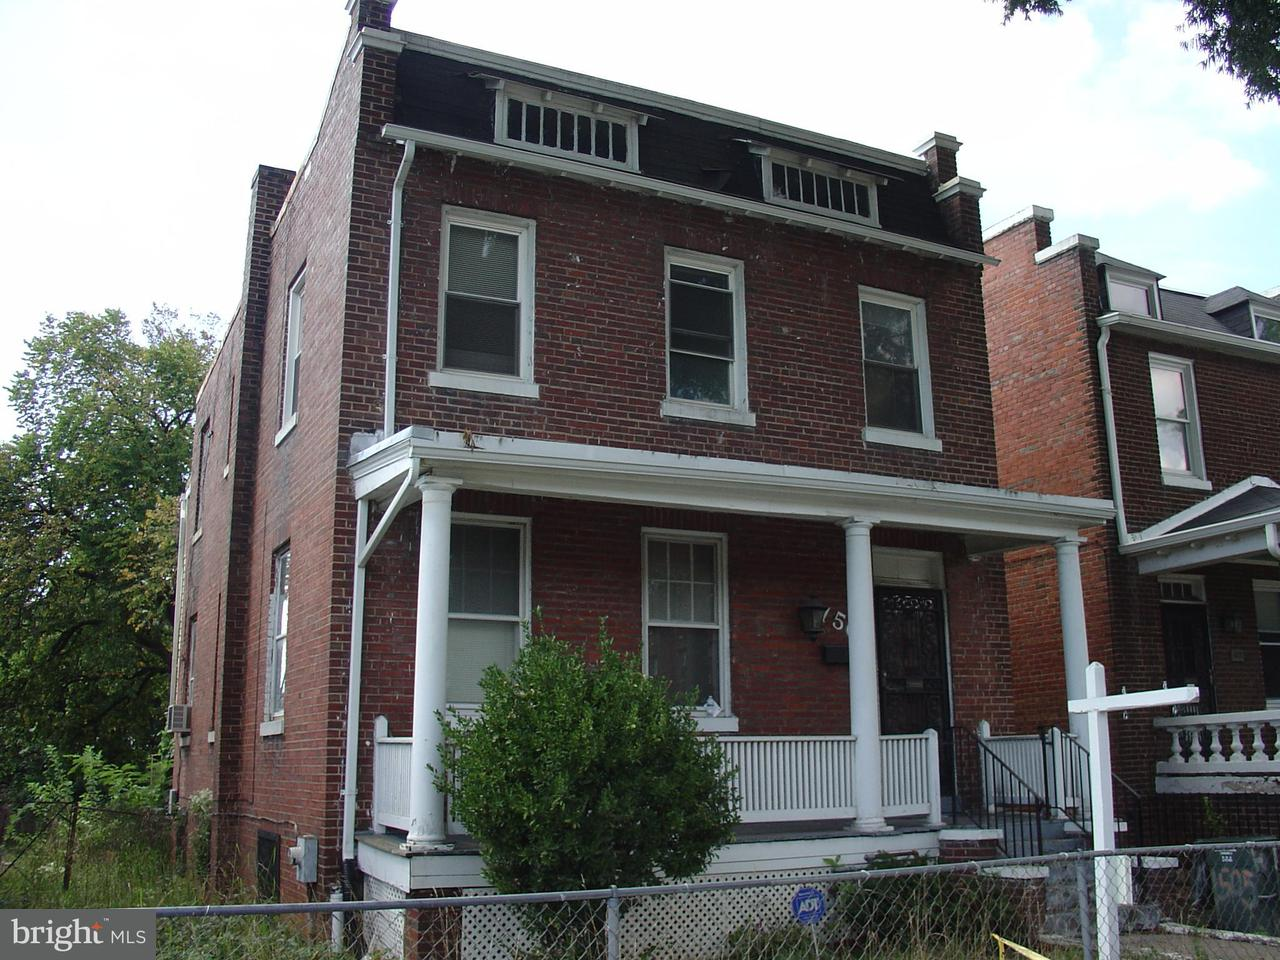 Single Family Home for Sale at 1505 NEAL ST NE 1505 NEAL ST NE Washington, District Of Columbia 20002 United States